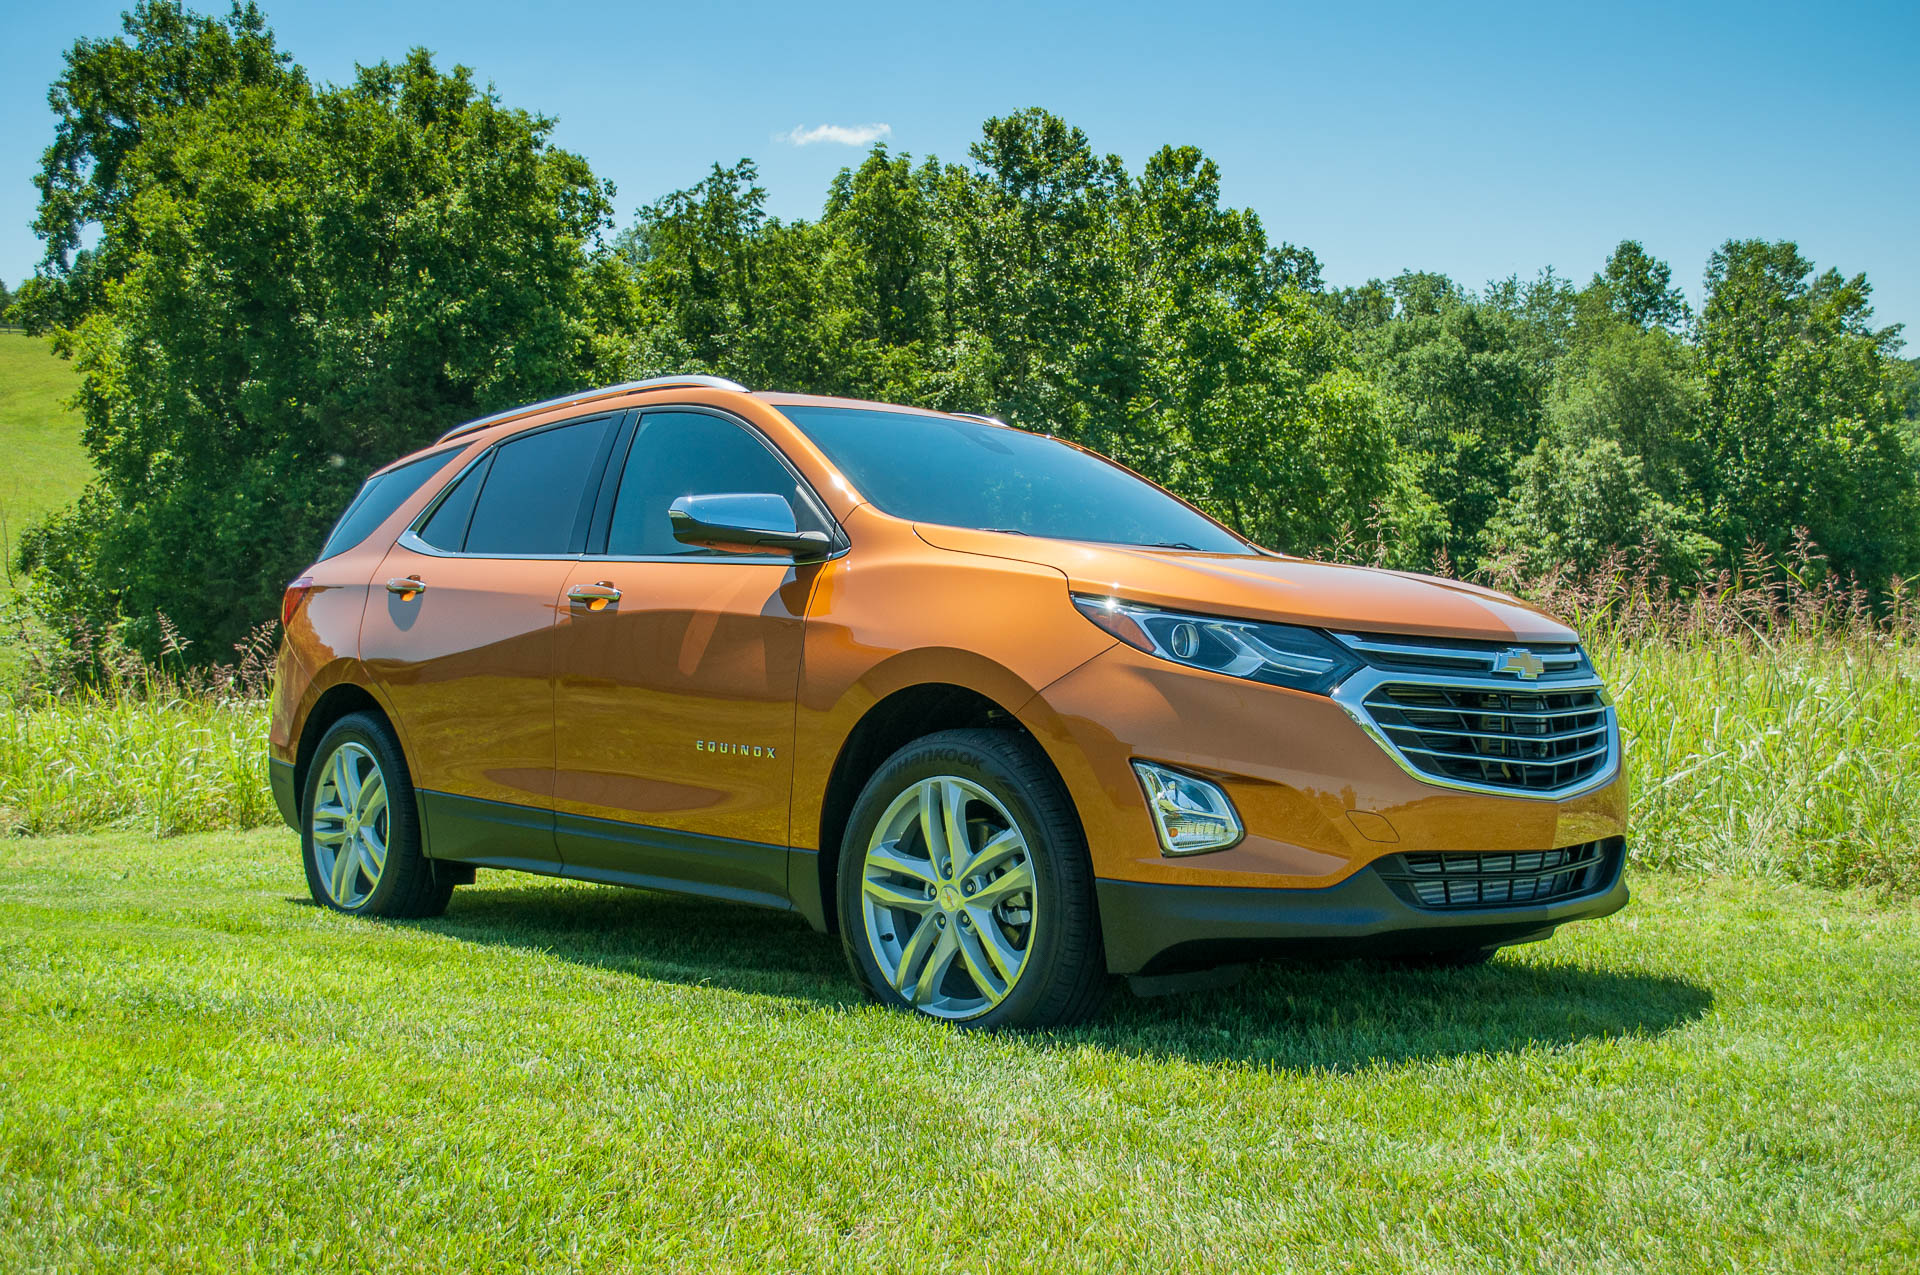 2018 Chevrolet Equinox 2 0t First Drive More Power More